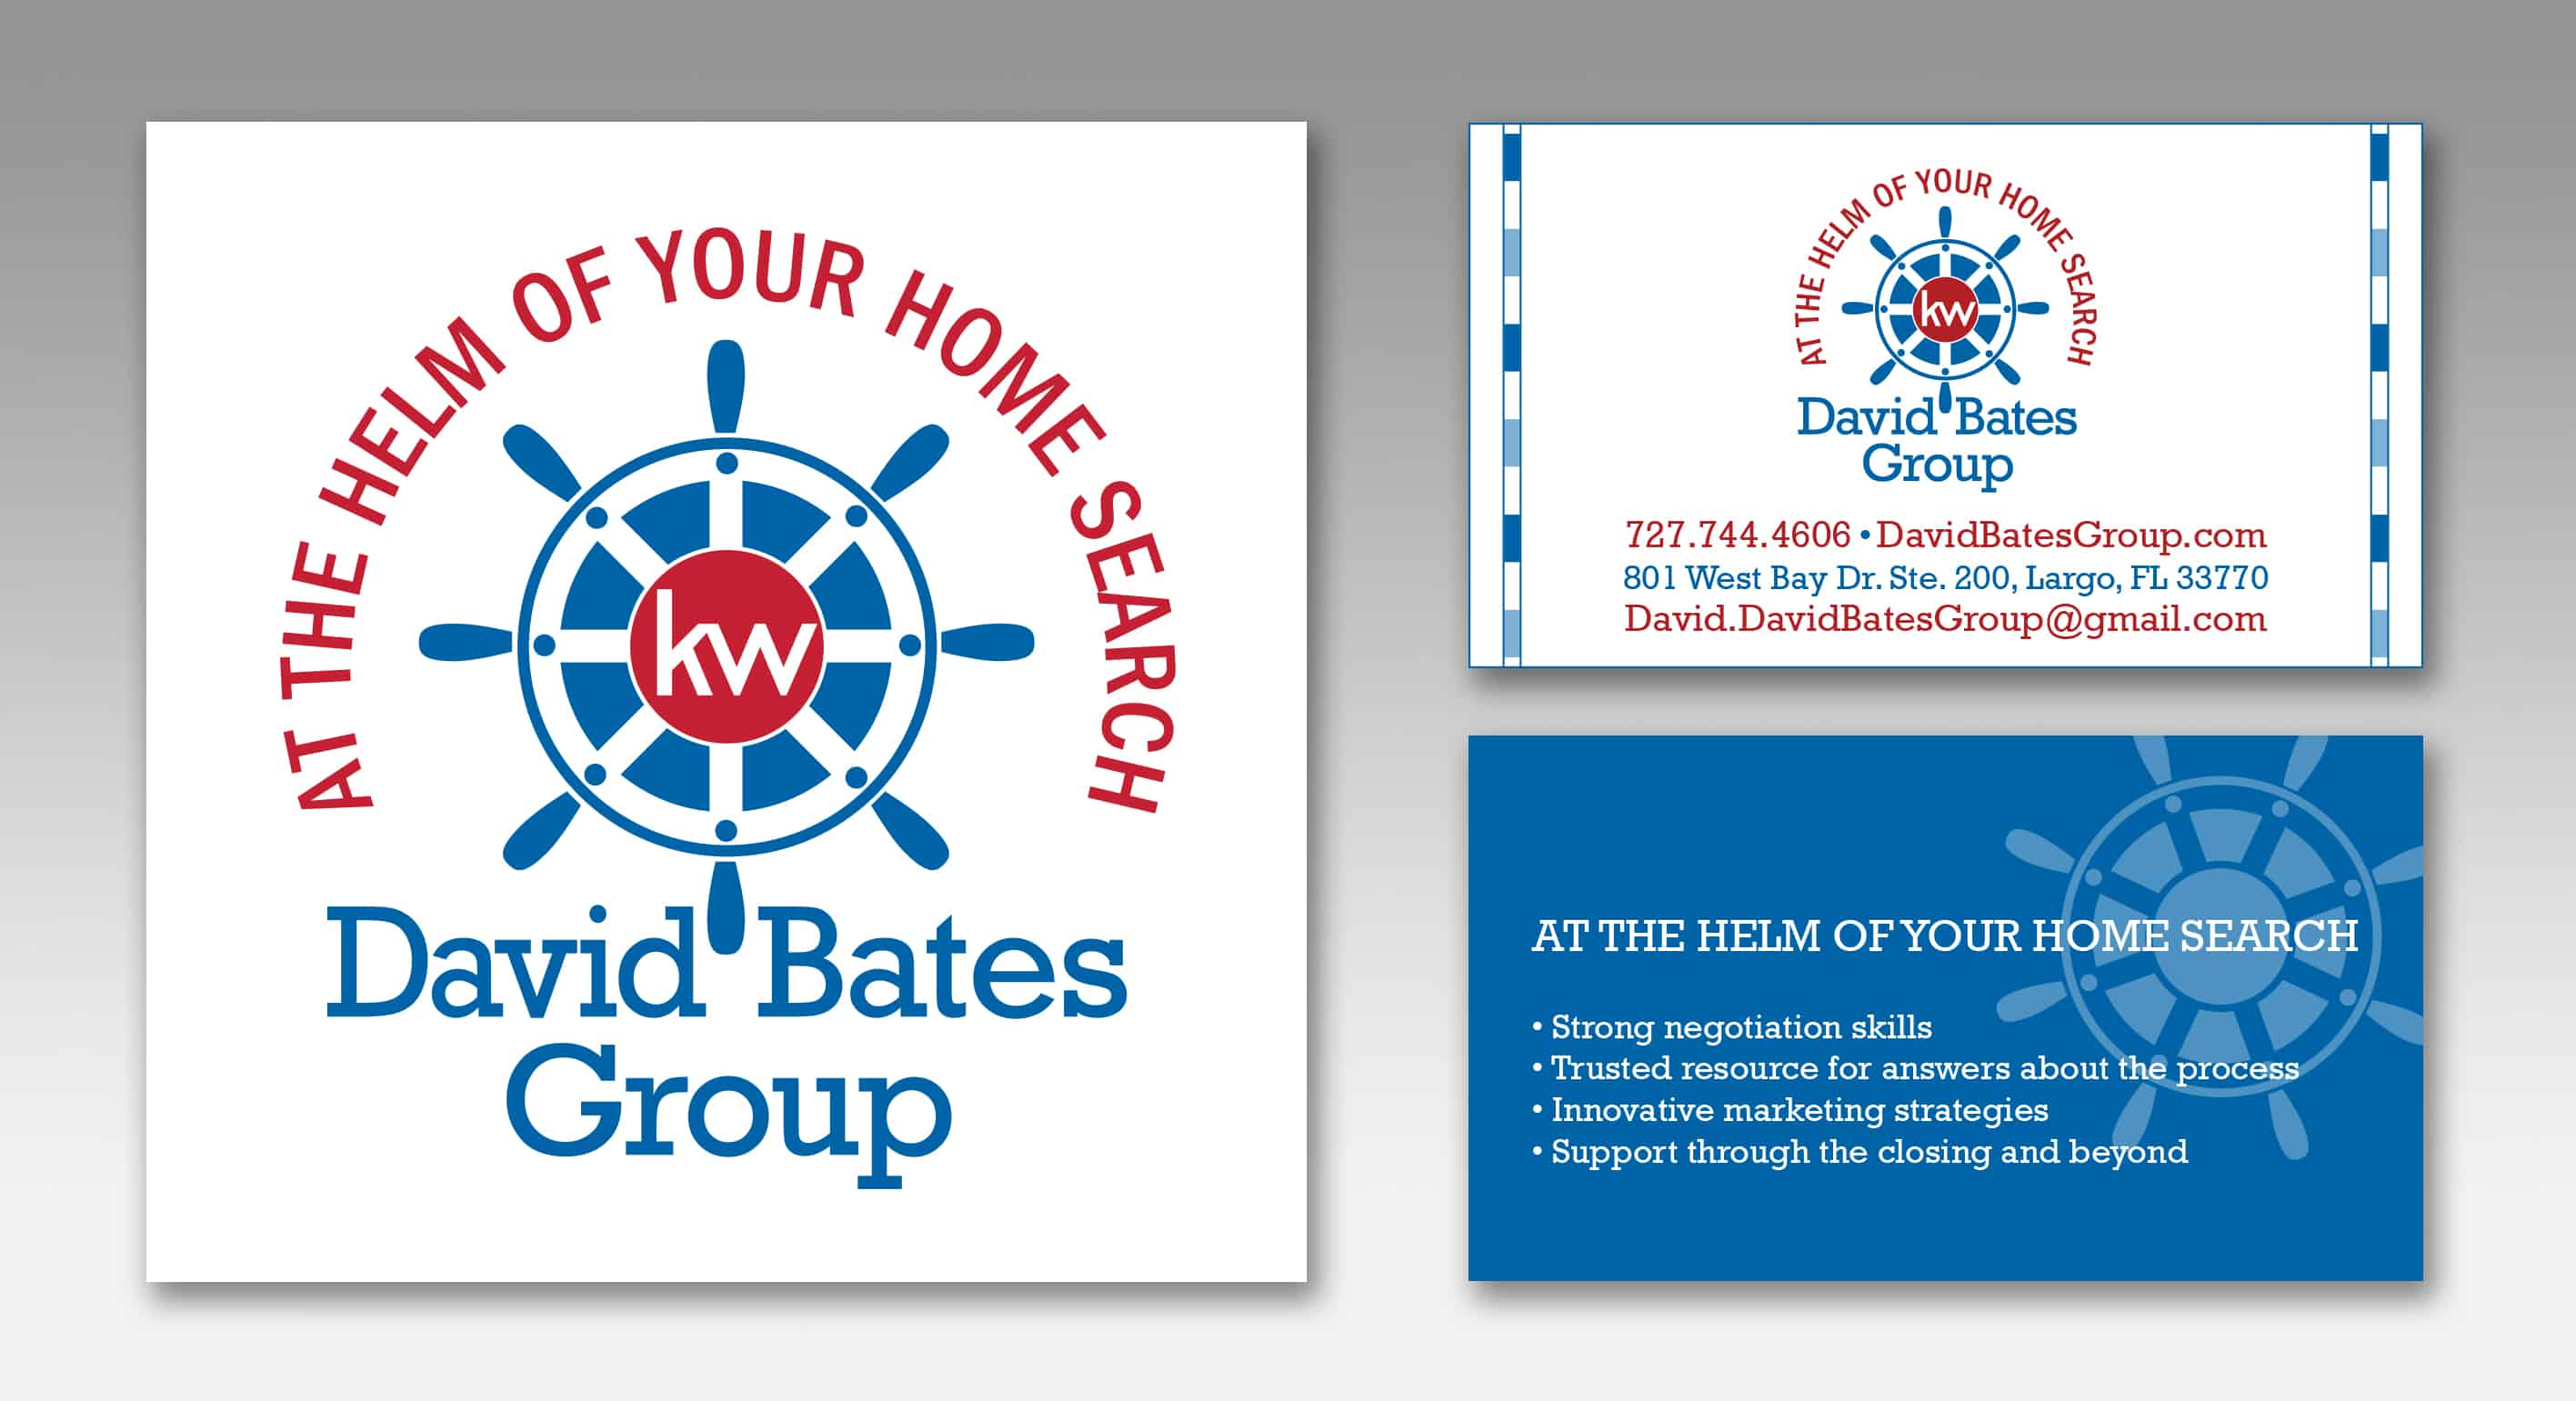 David Bates Group – Keller Williams Realtor